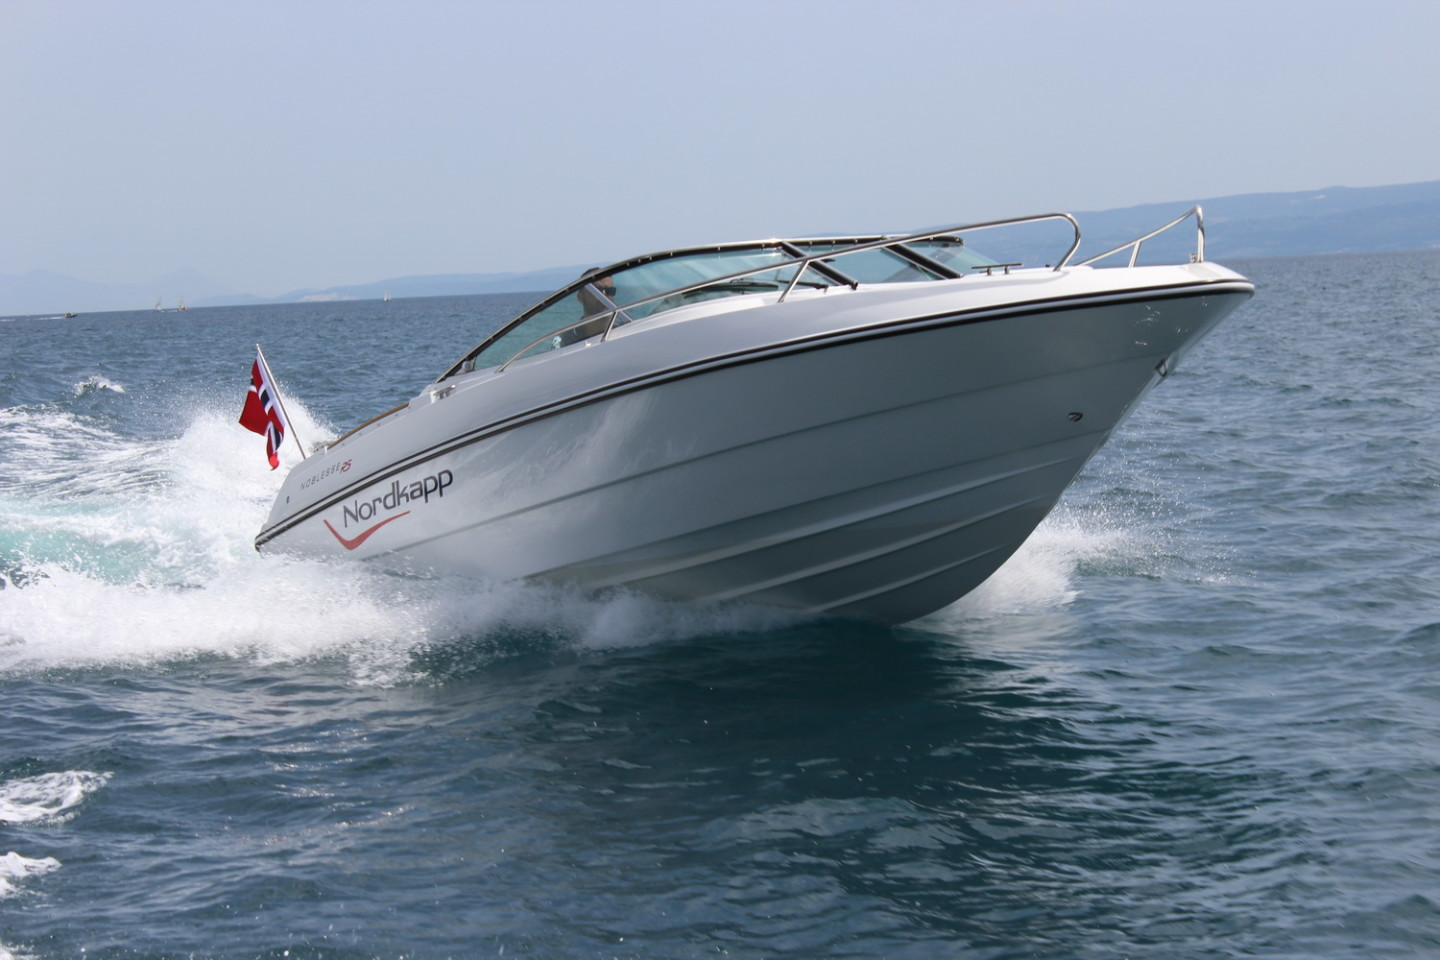 Nordkapp Noblesse 820 RS summer rent a boat for a day speedboat summer vacation cruise